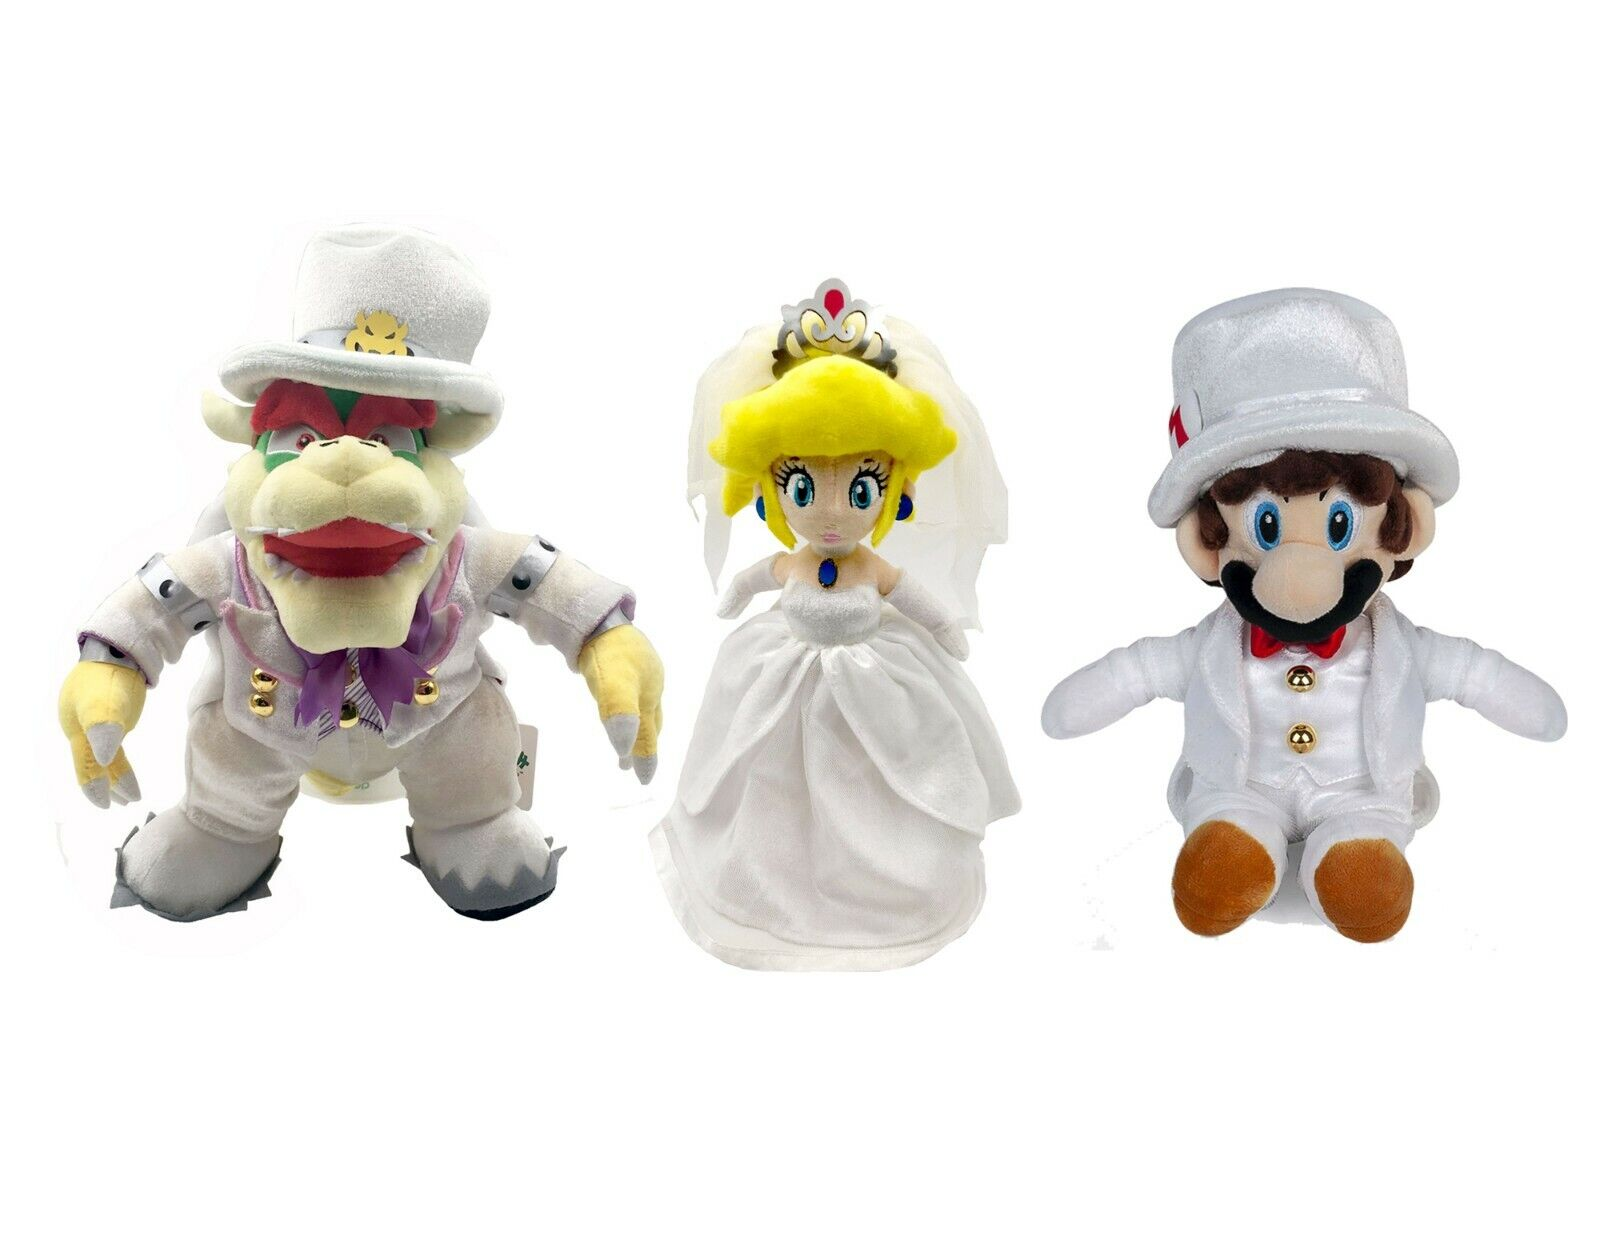 3X Super Mario Odyssey King Bowser Princess Peach Mario Wedding Dress Plush Toy